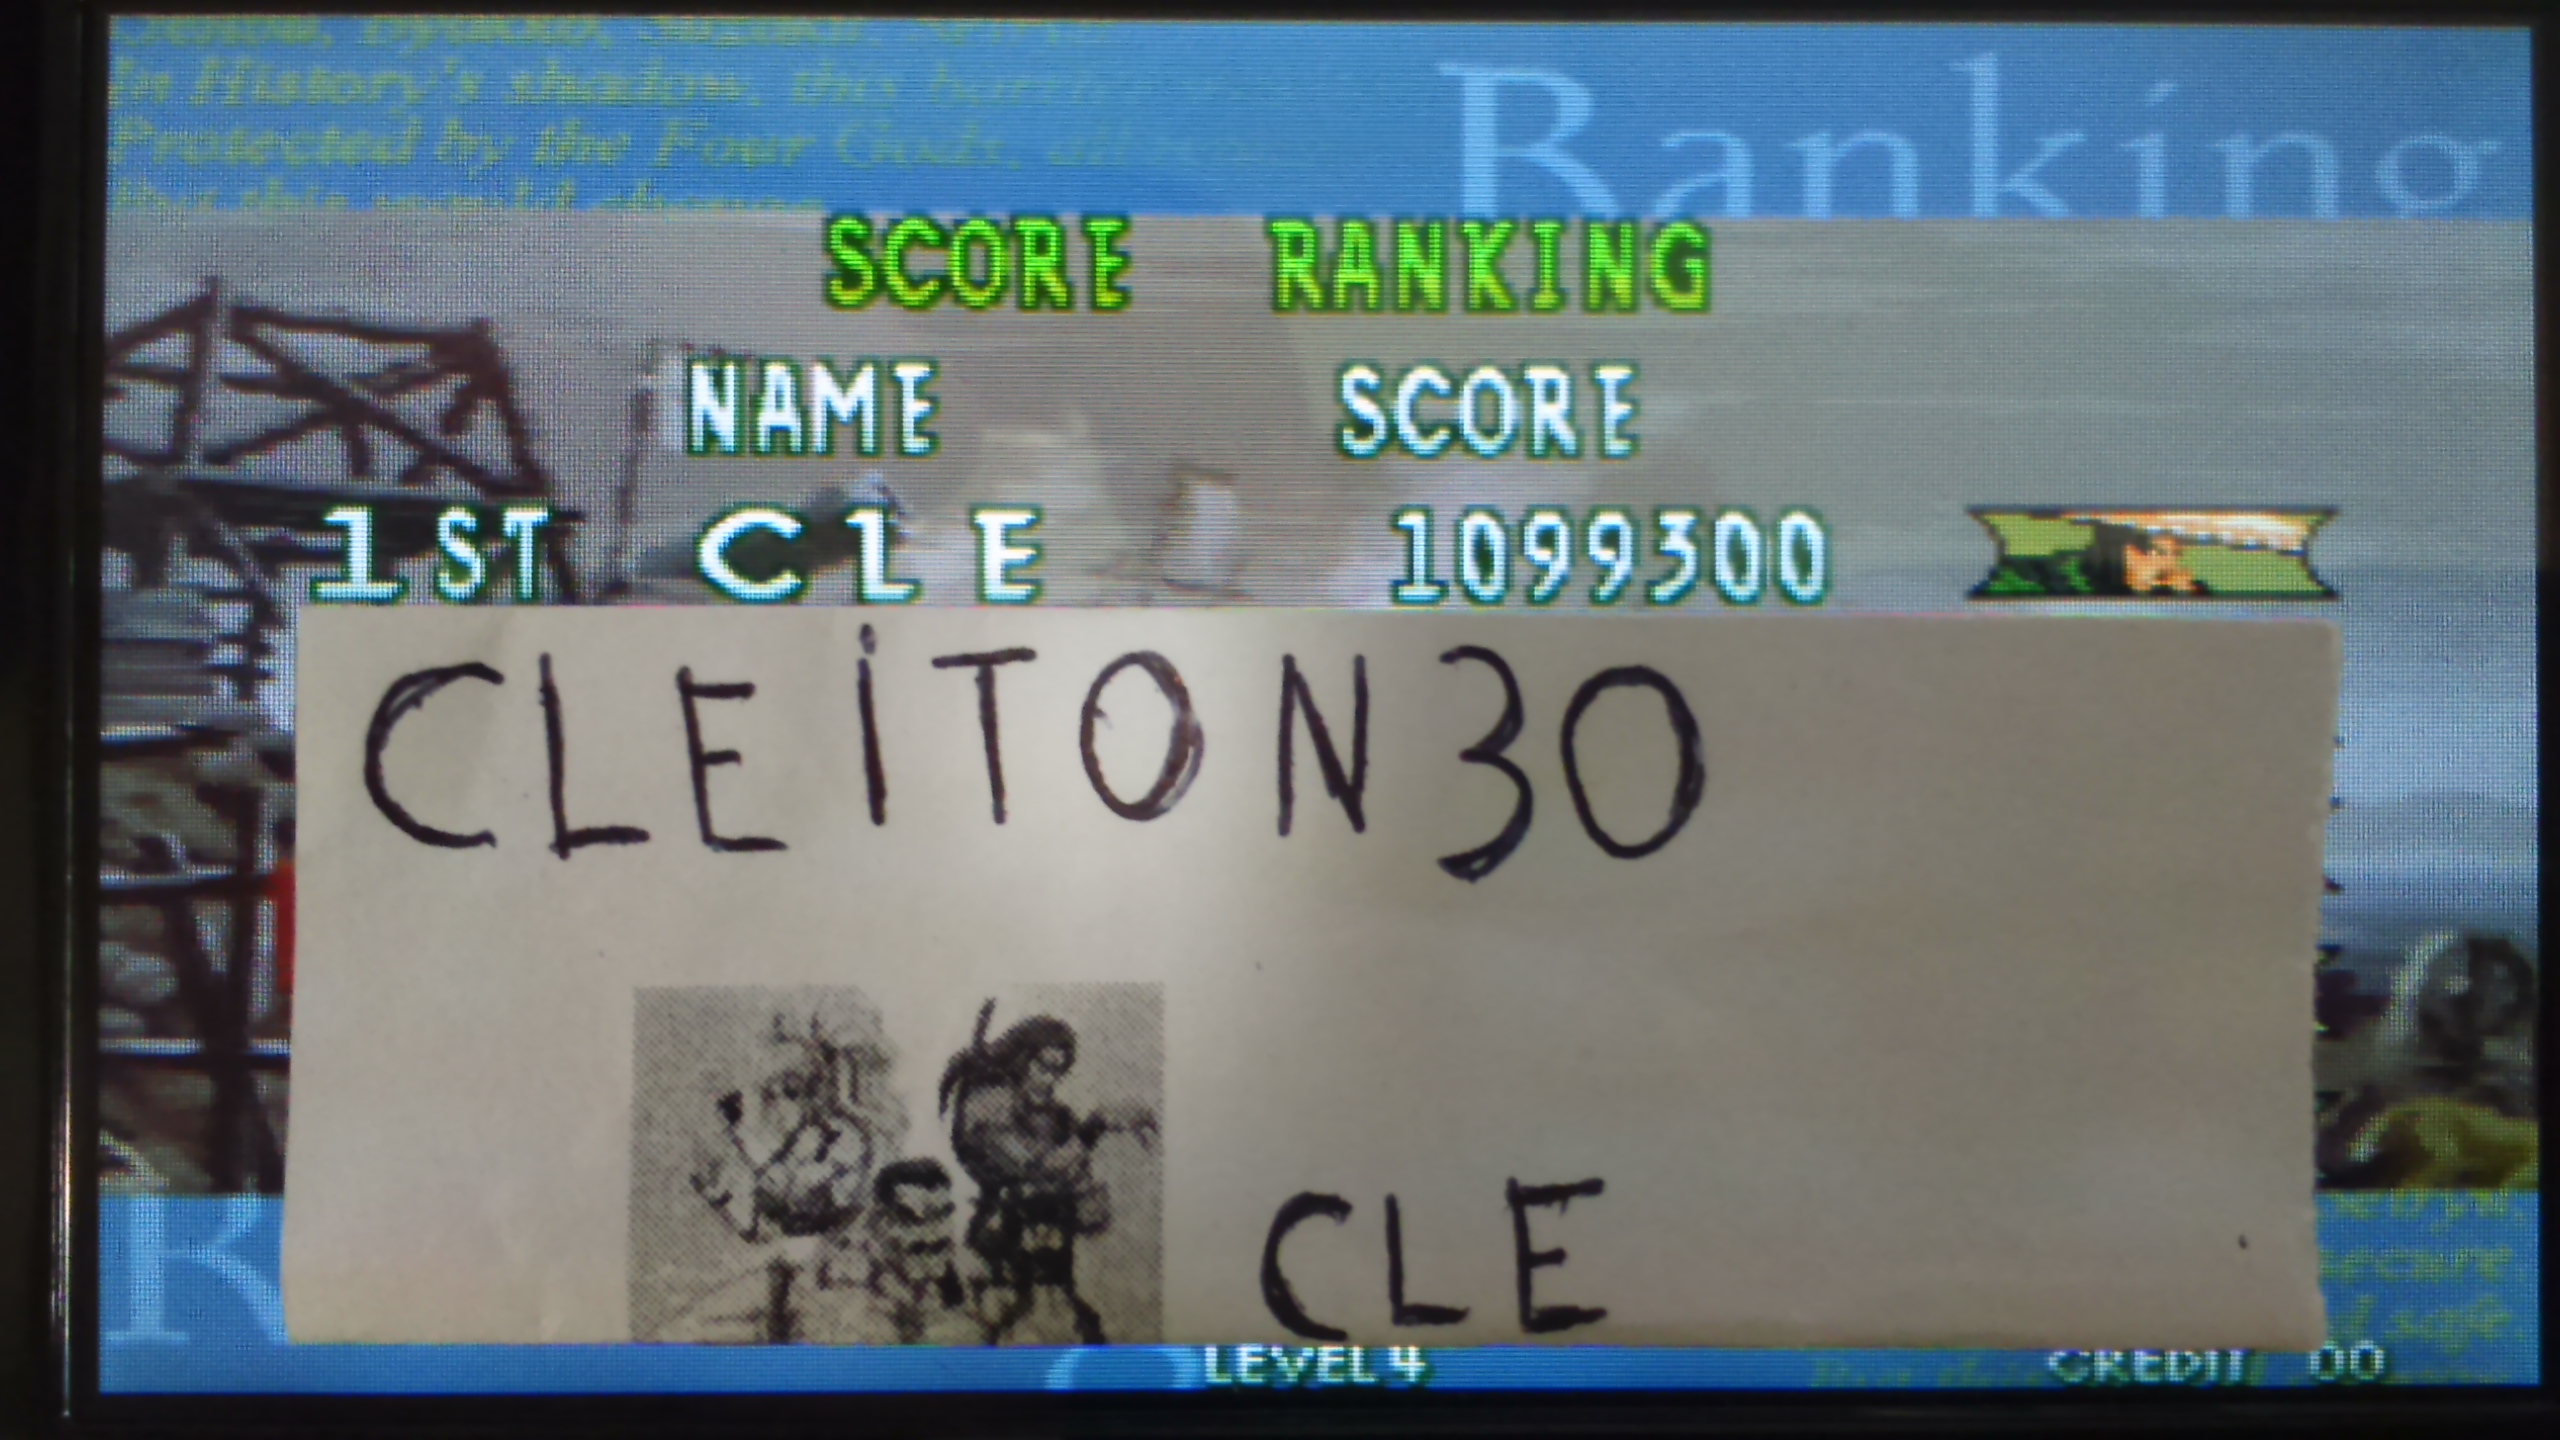 Cleiton30: Last Blade 2 (Neo Geo Emulated) 1,099,300 points on 2016-05-20 16:01:59